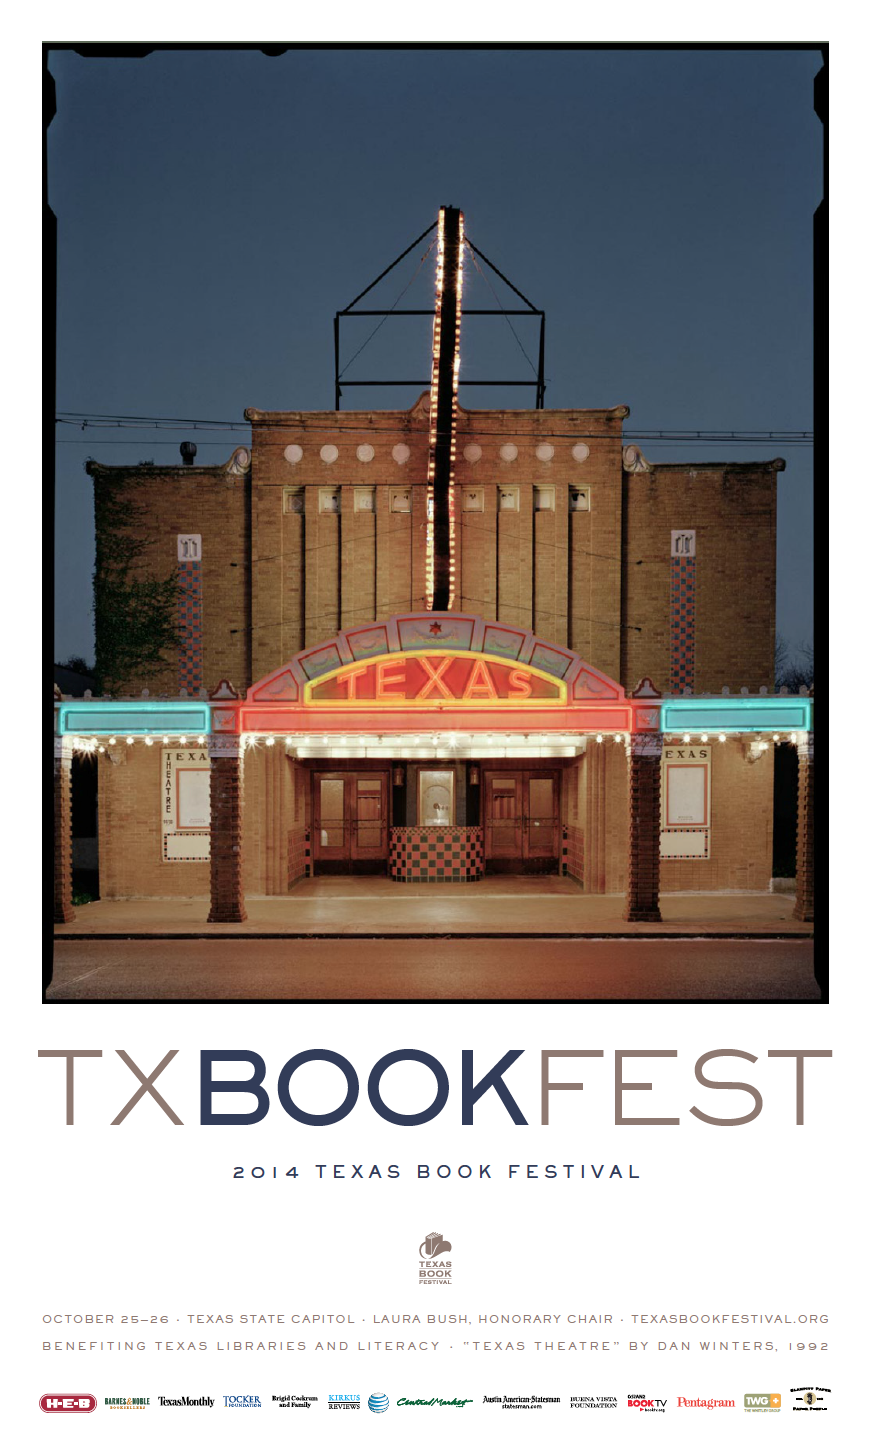 The Texas Book Festival